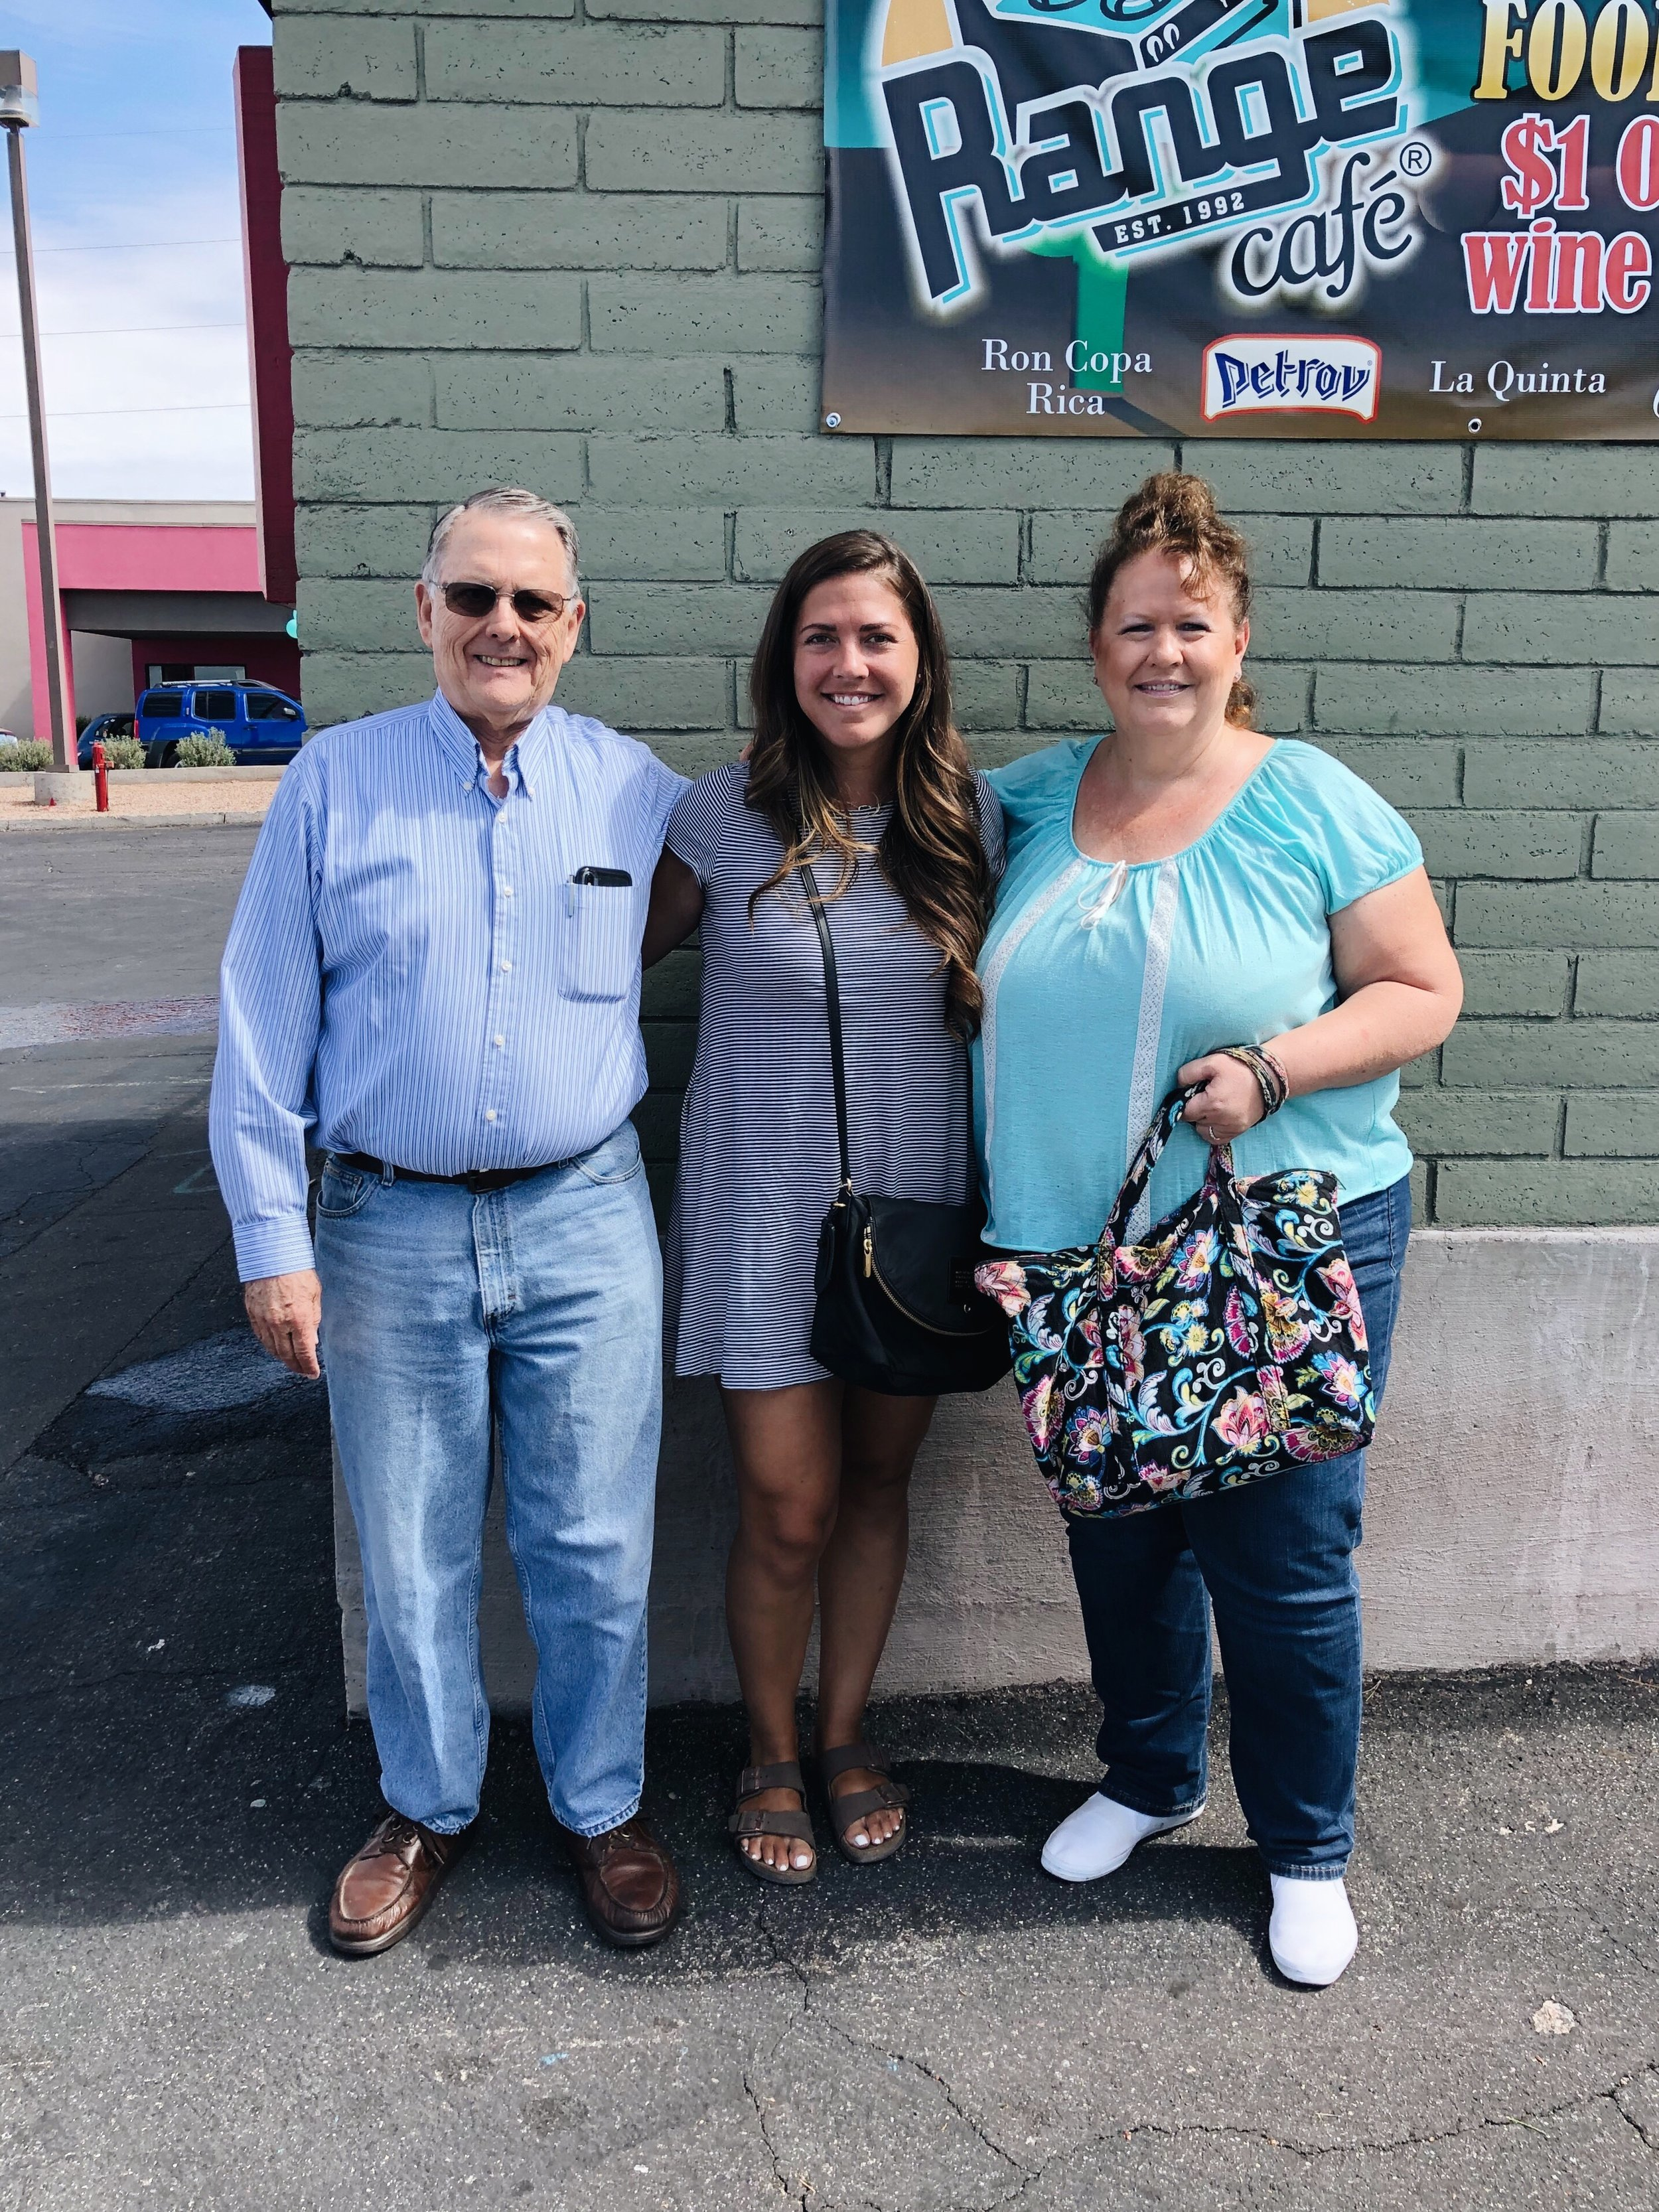 adoptee meets her birth mom and dad supports her